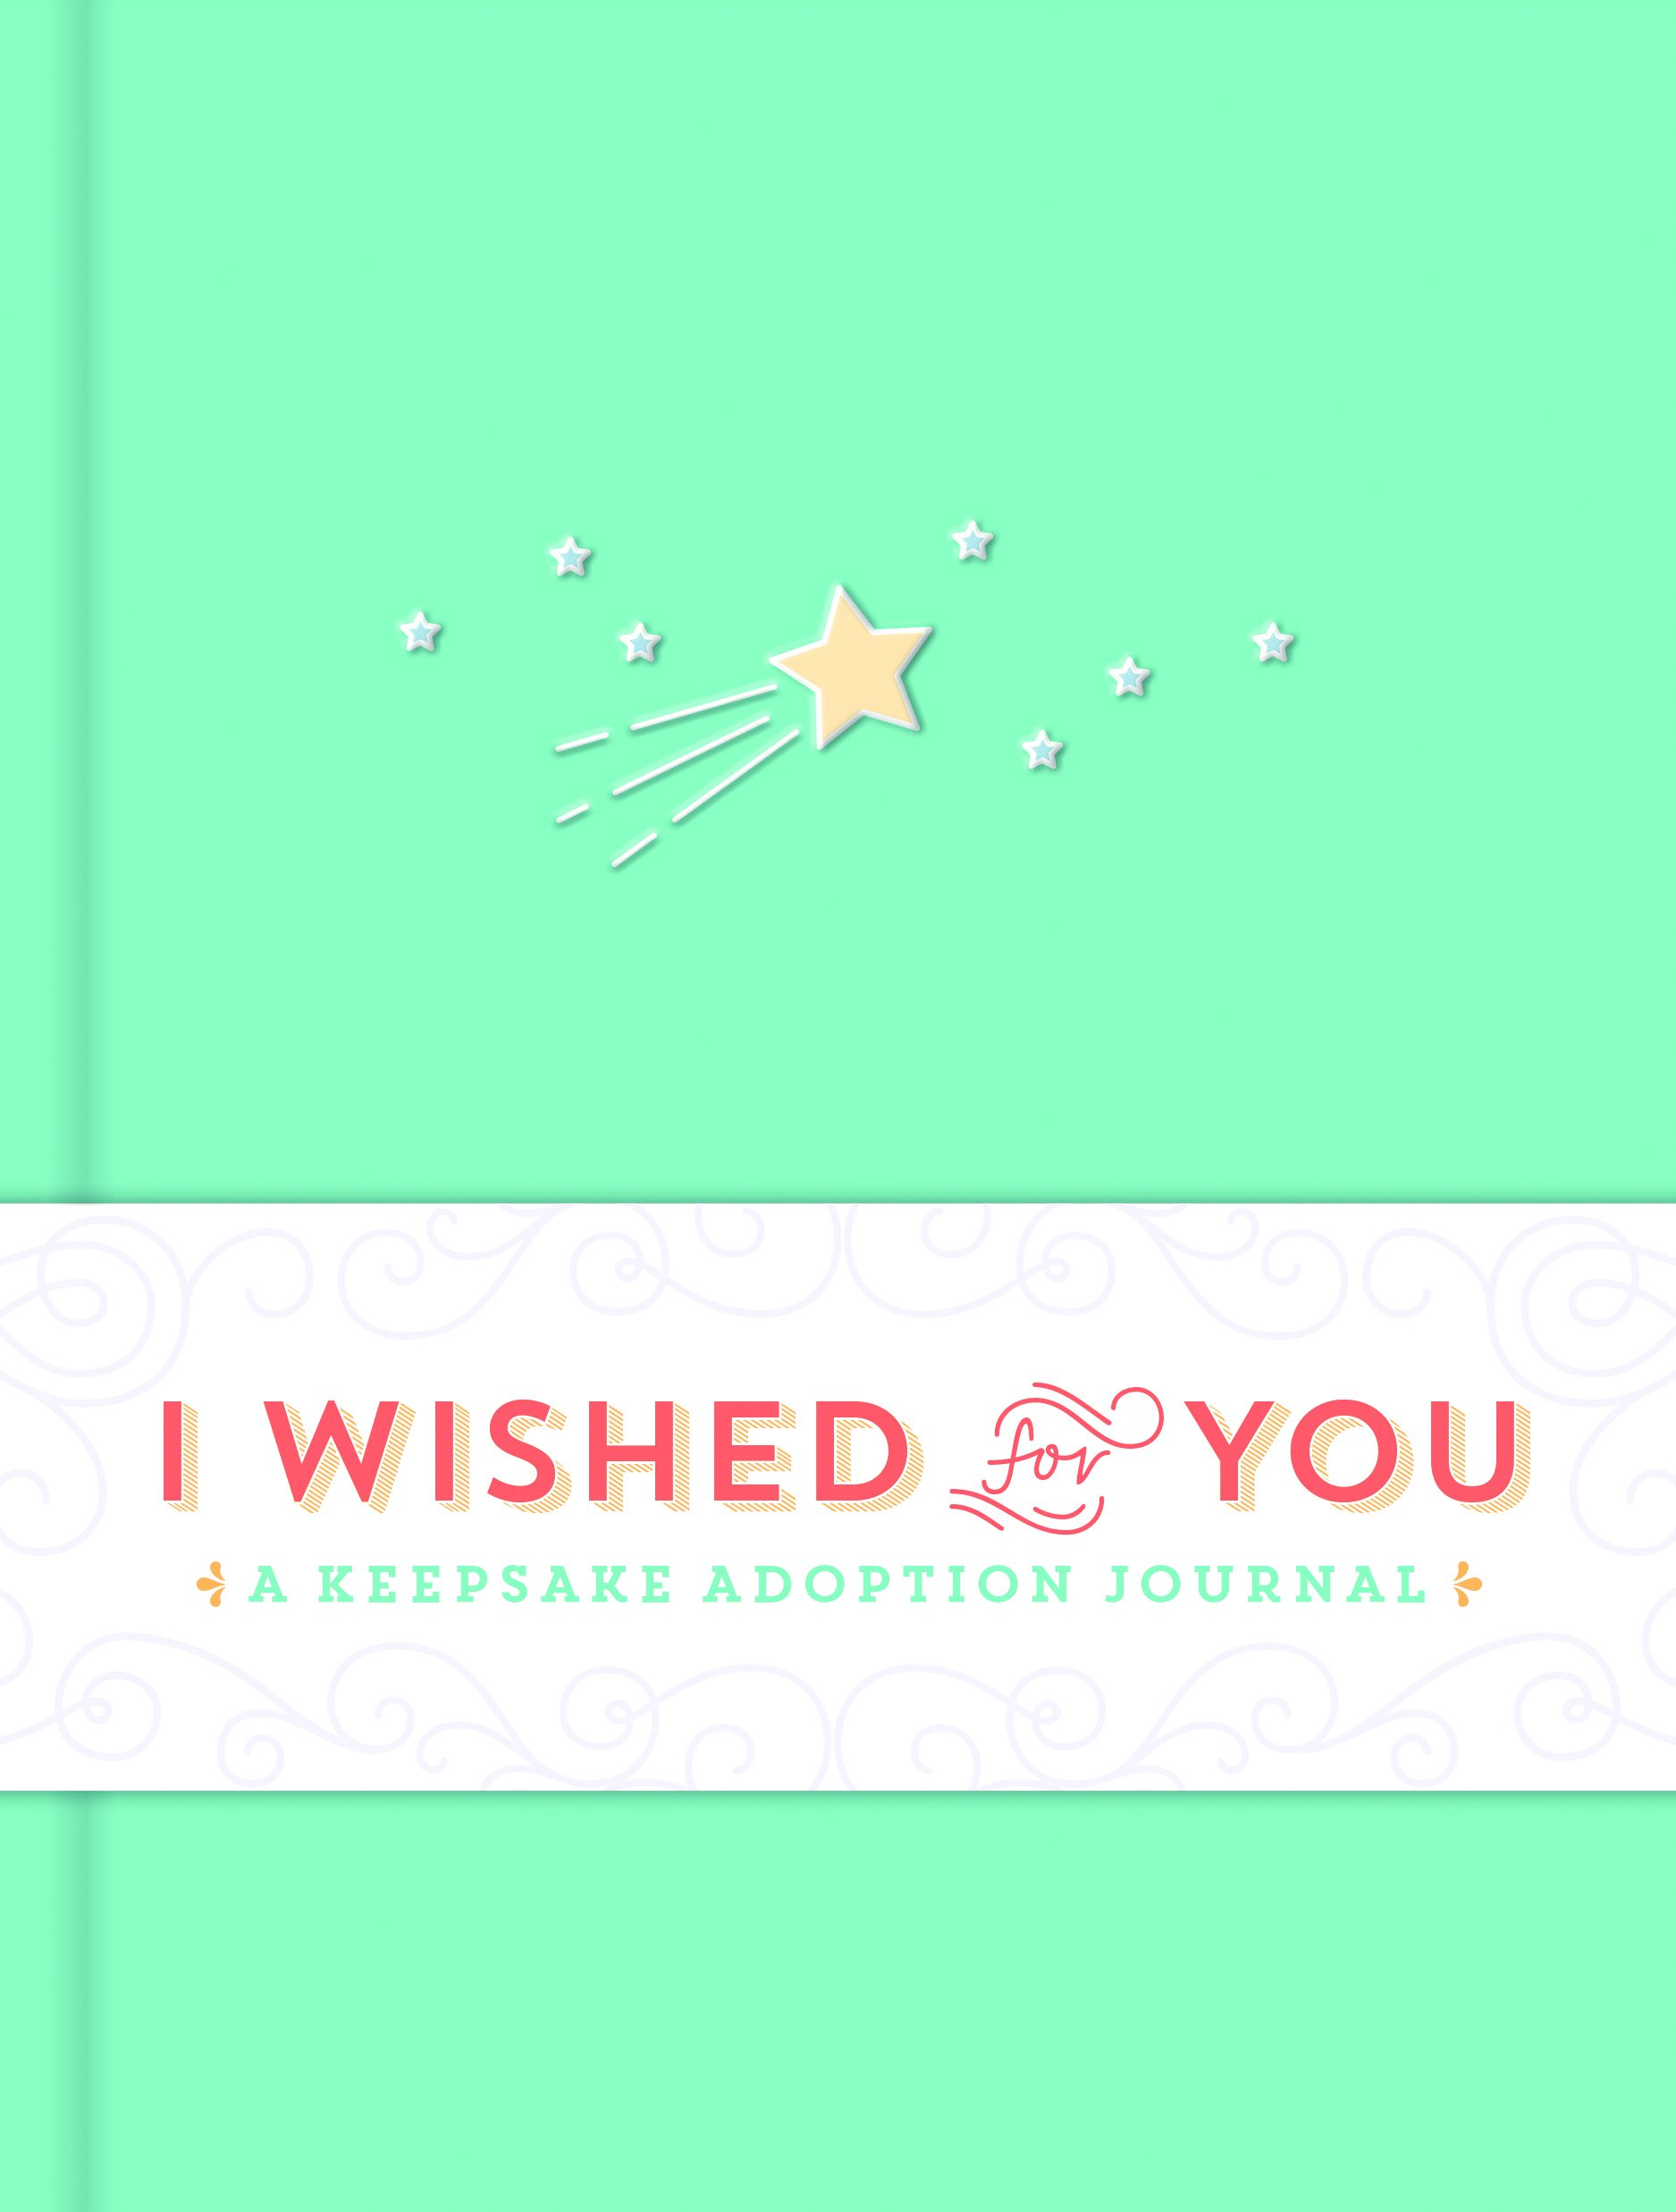 I Wished for You: A Keepsake Adoption Journal